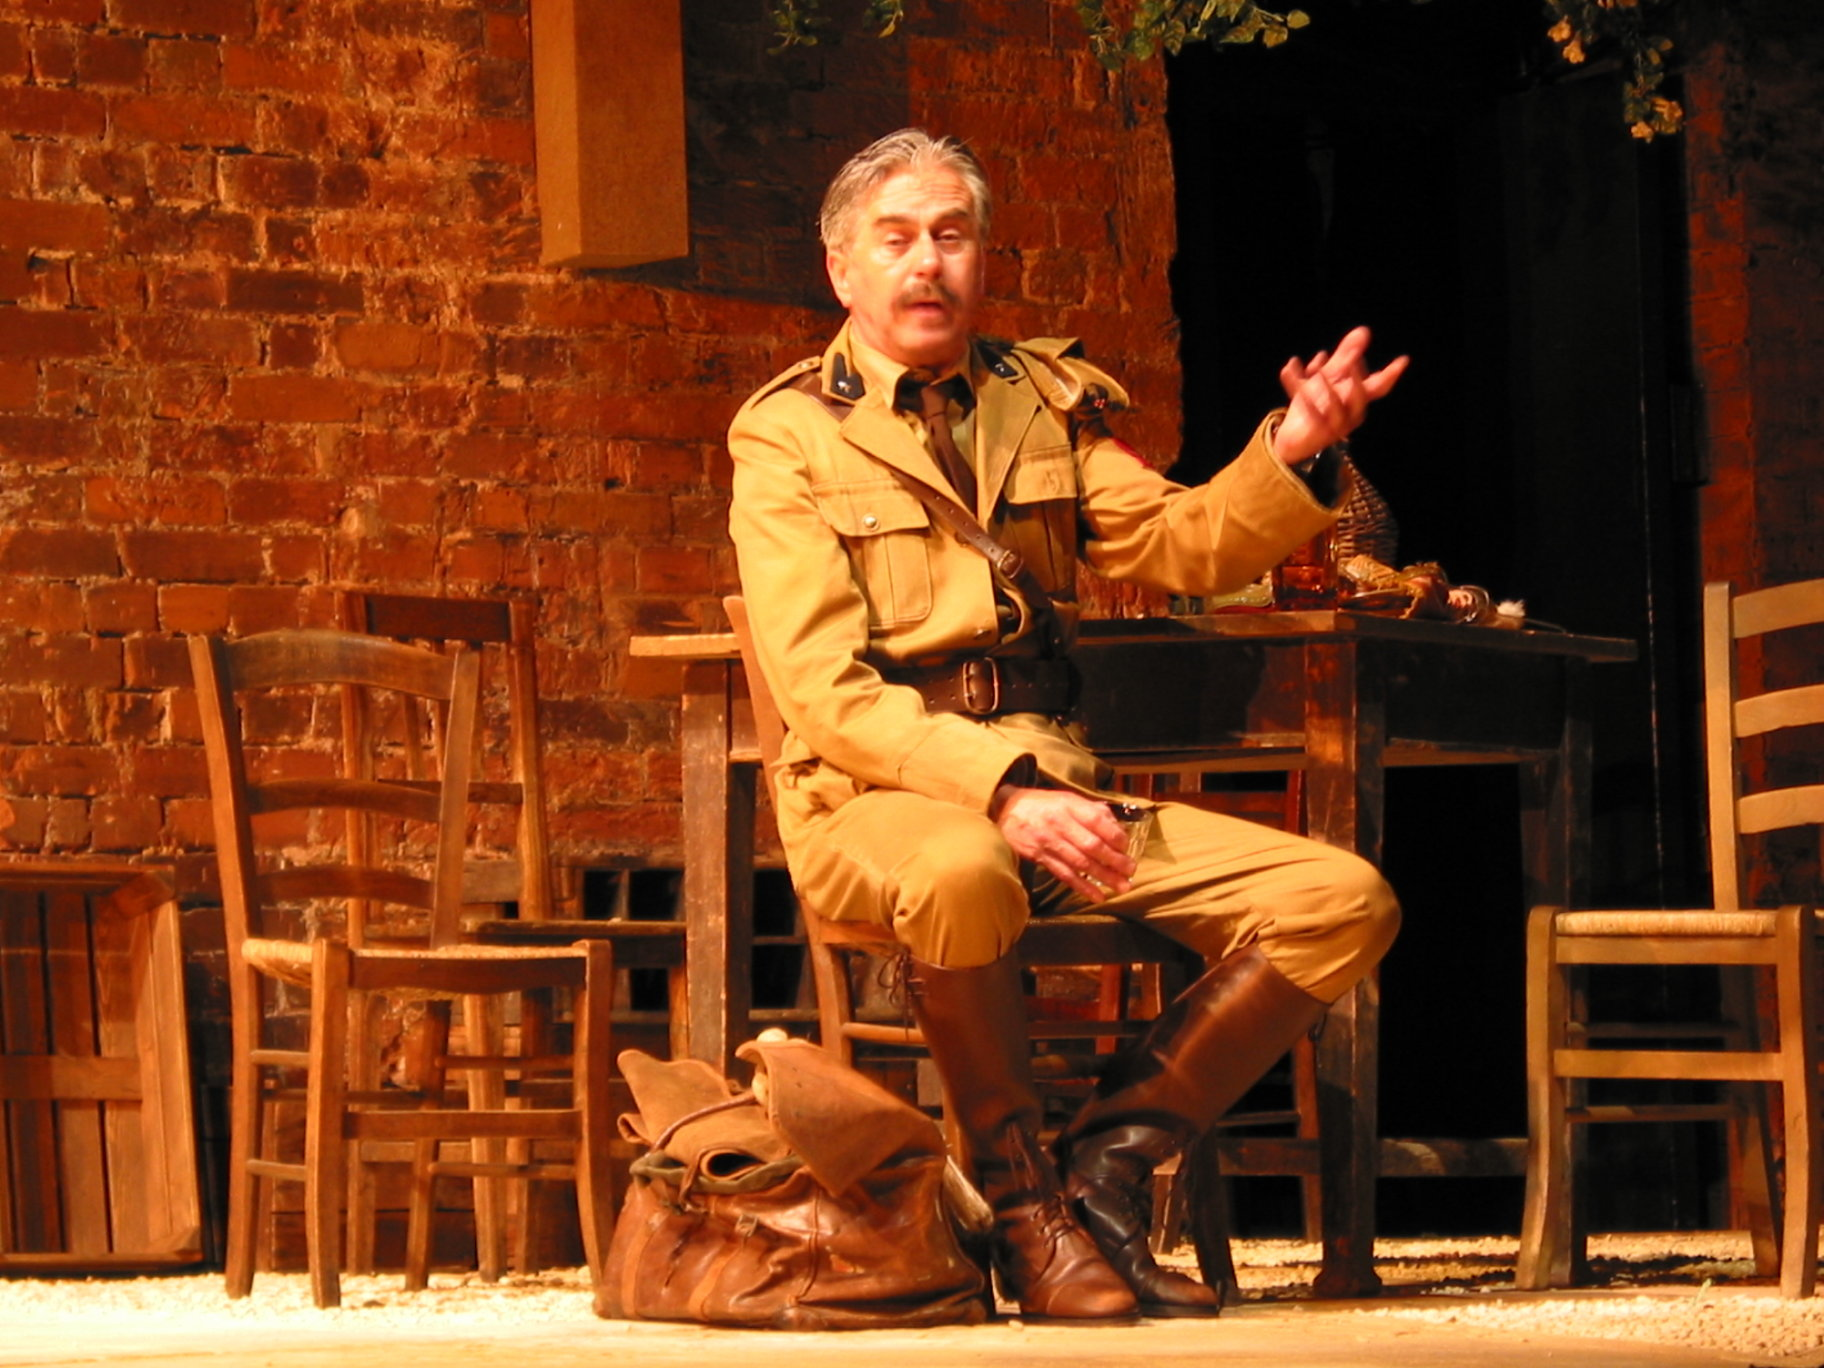 Benedick in a khaki suit and brown leather boots.